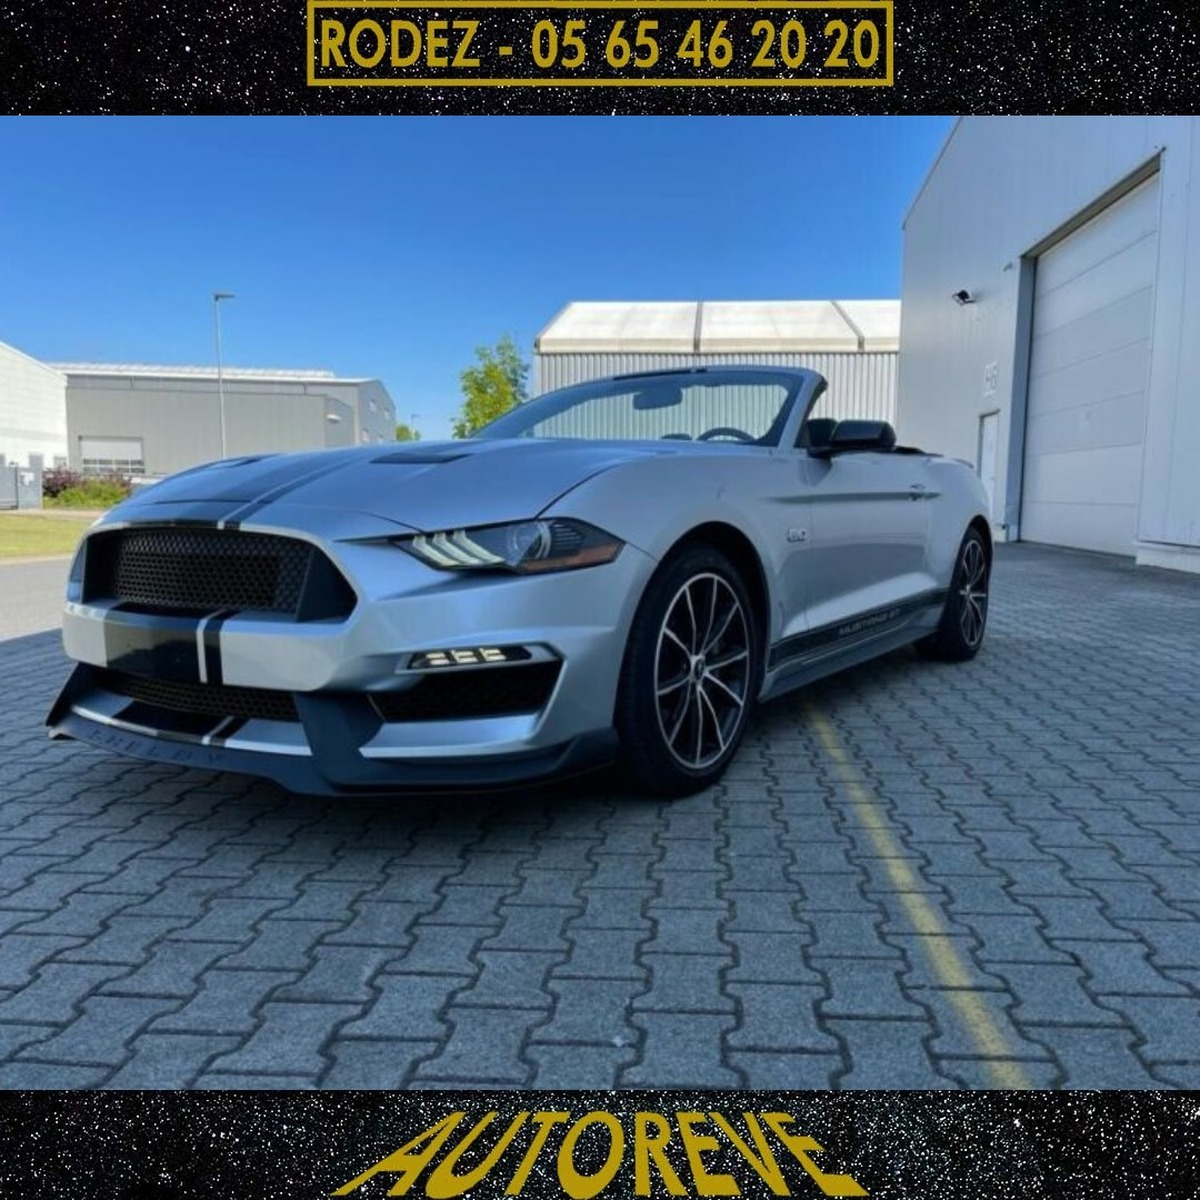 Ford Mustang abrio 5.0 V8 GT 2019 Facelift